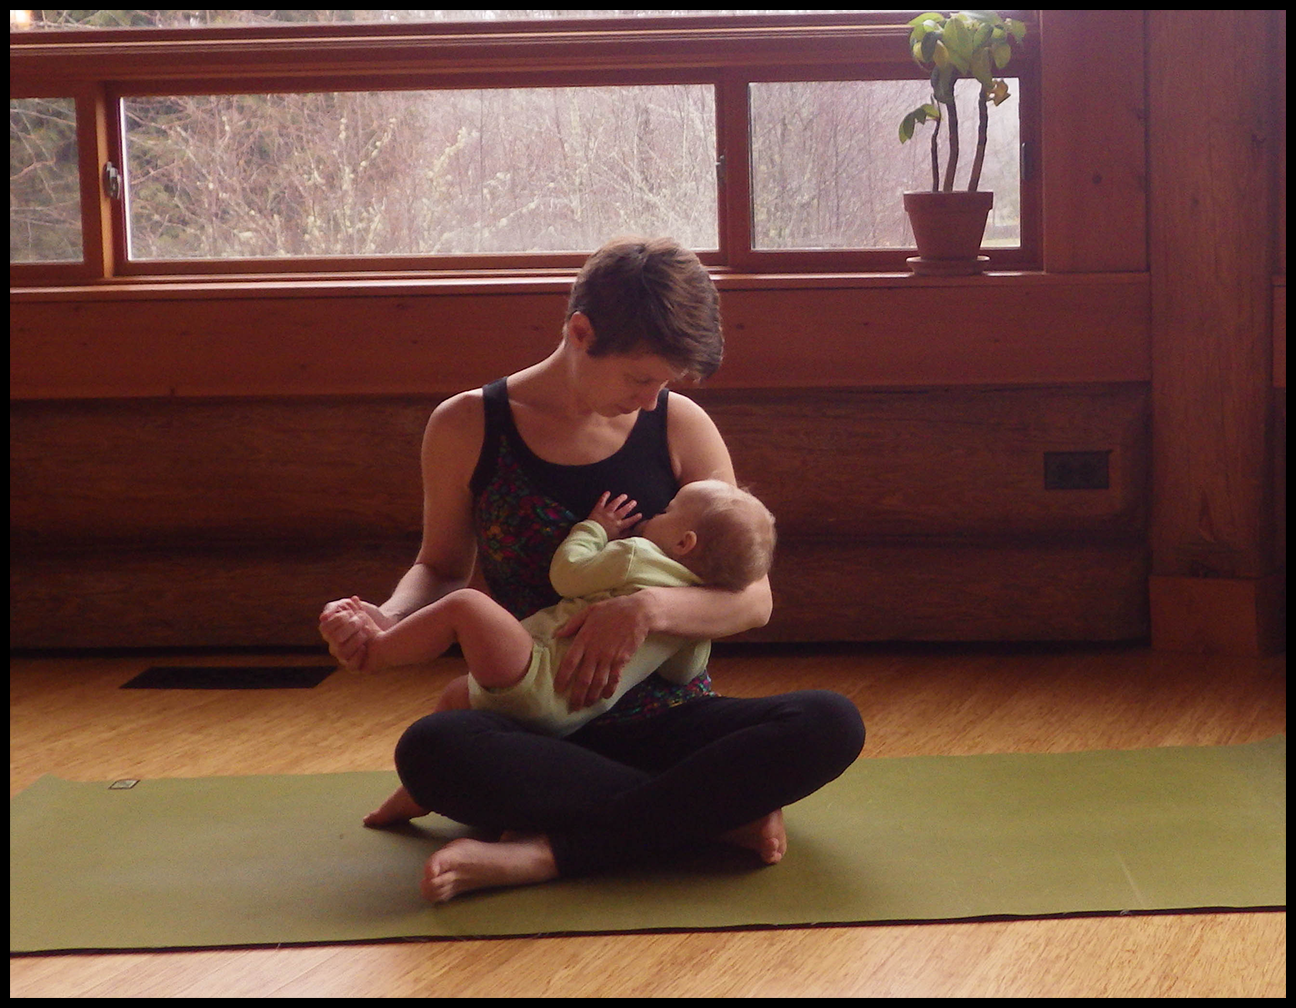 The baby's idea of yoga time. Nursing activewear from 5 out of 4 Patterns